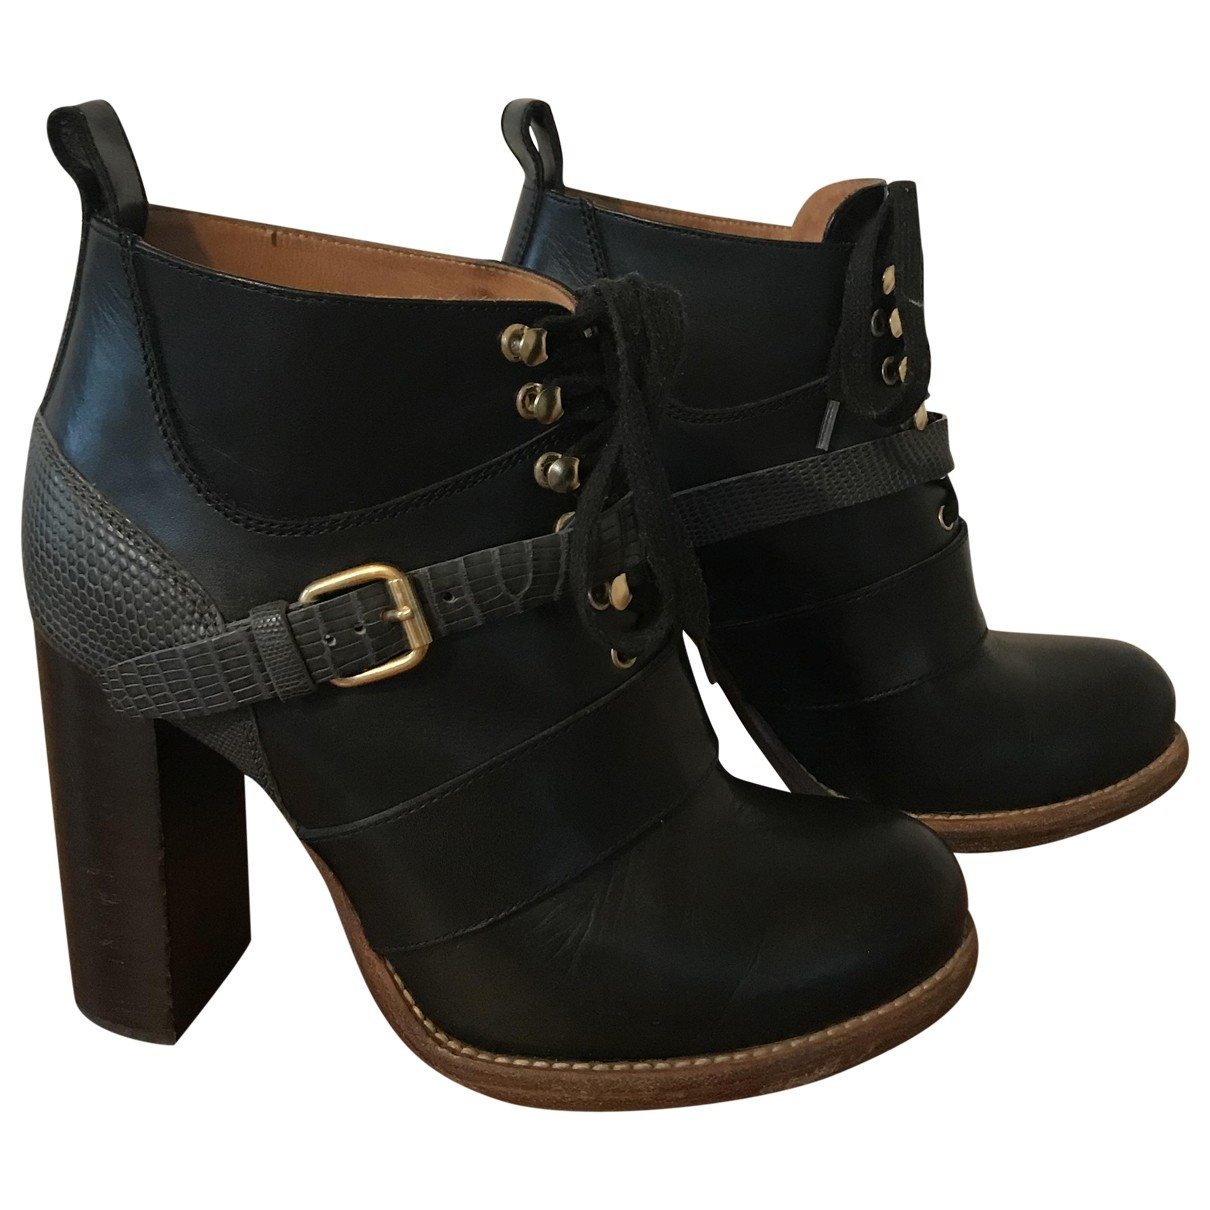 Chloé \N Black Leather Ankle boots for Women 36 EU